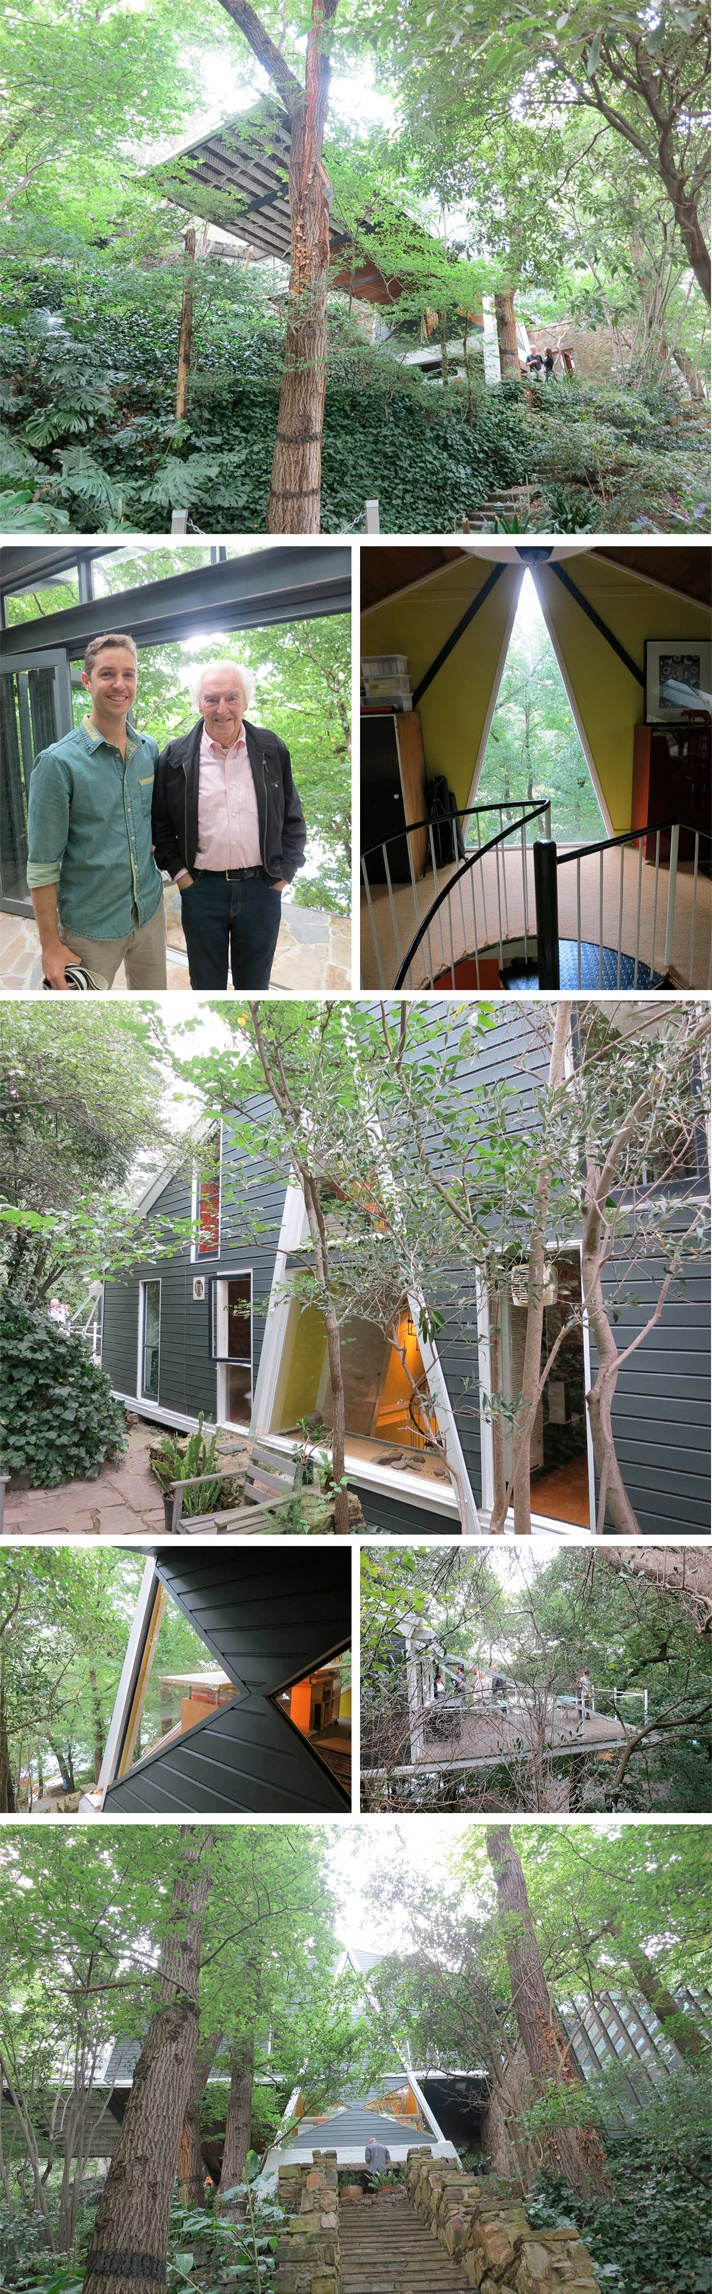 Peter McIntyre's River House